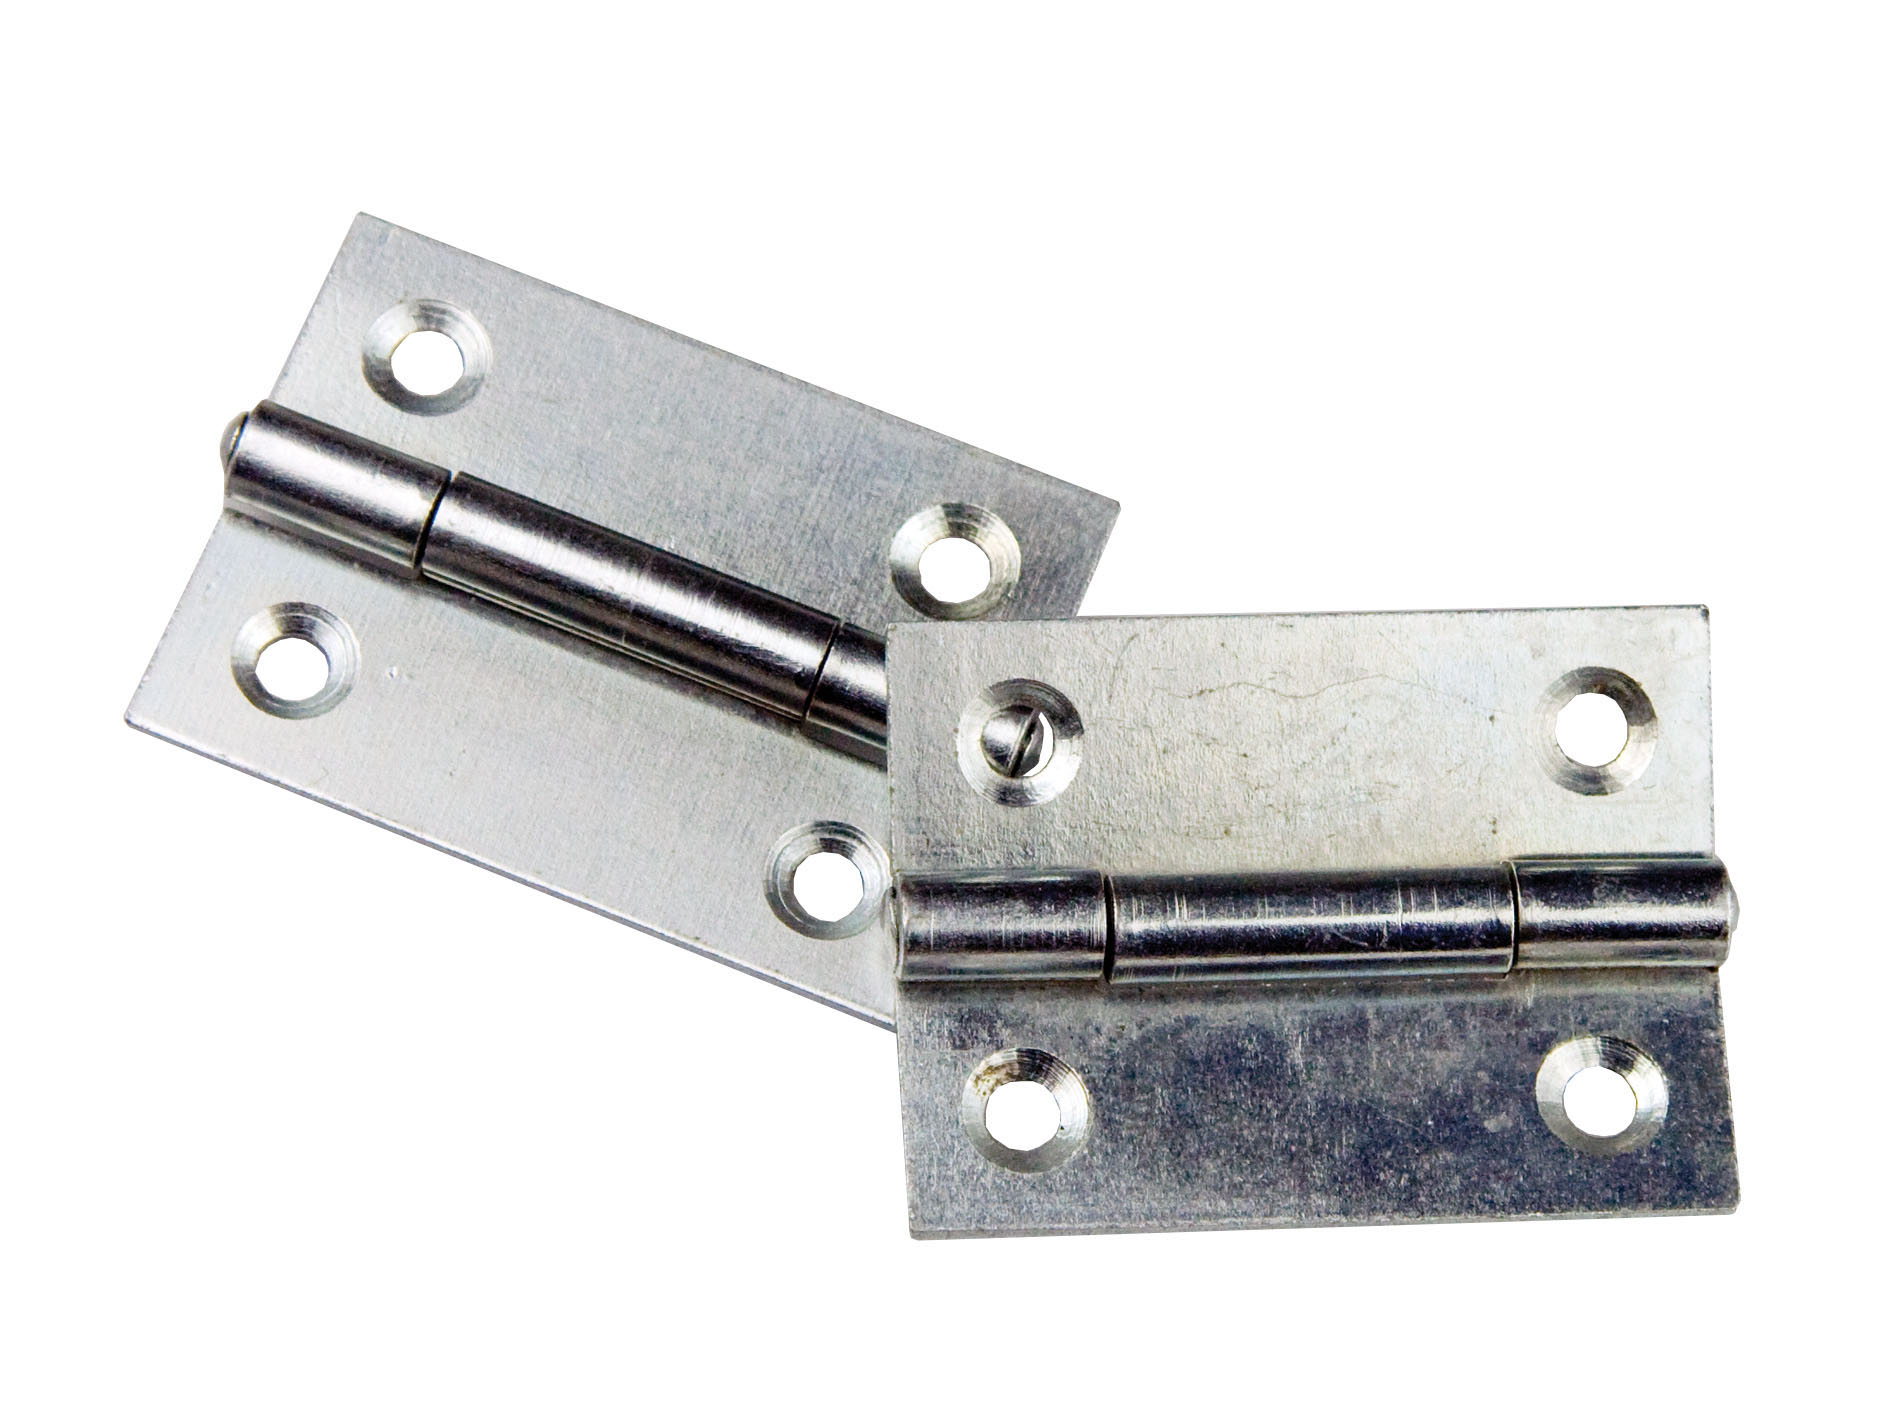 75 x 48mm Zinc Plated Butt Hinge 75 x 48mm Zinc Plated Butt Hinge Measurements Width : 75mm Height : 48mm Thickness : 1.5mm Screw Holes : 6 x 5mm Sold as Singles Material : Steel Finish : Zinc Plated Manufactured by Siso 75 x 48mm Zinc Plated Butt Hinge Description These butt hinges are traditionally used on furniture doors or small lightweight doors. They are recessed into the frame and also the edge of the door so that when the door is closed they can butt up together ensuring the door is shut flush. The knuckle of the hinge is normally on show and is often matched with handles or knobs of a similiar finish.